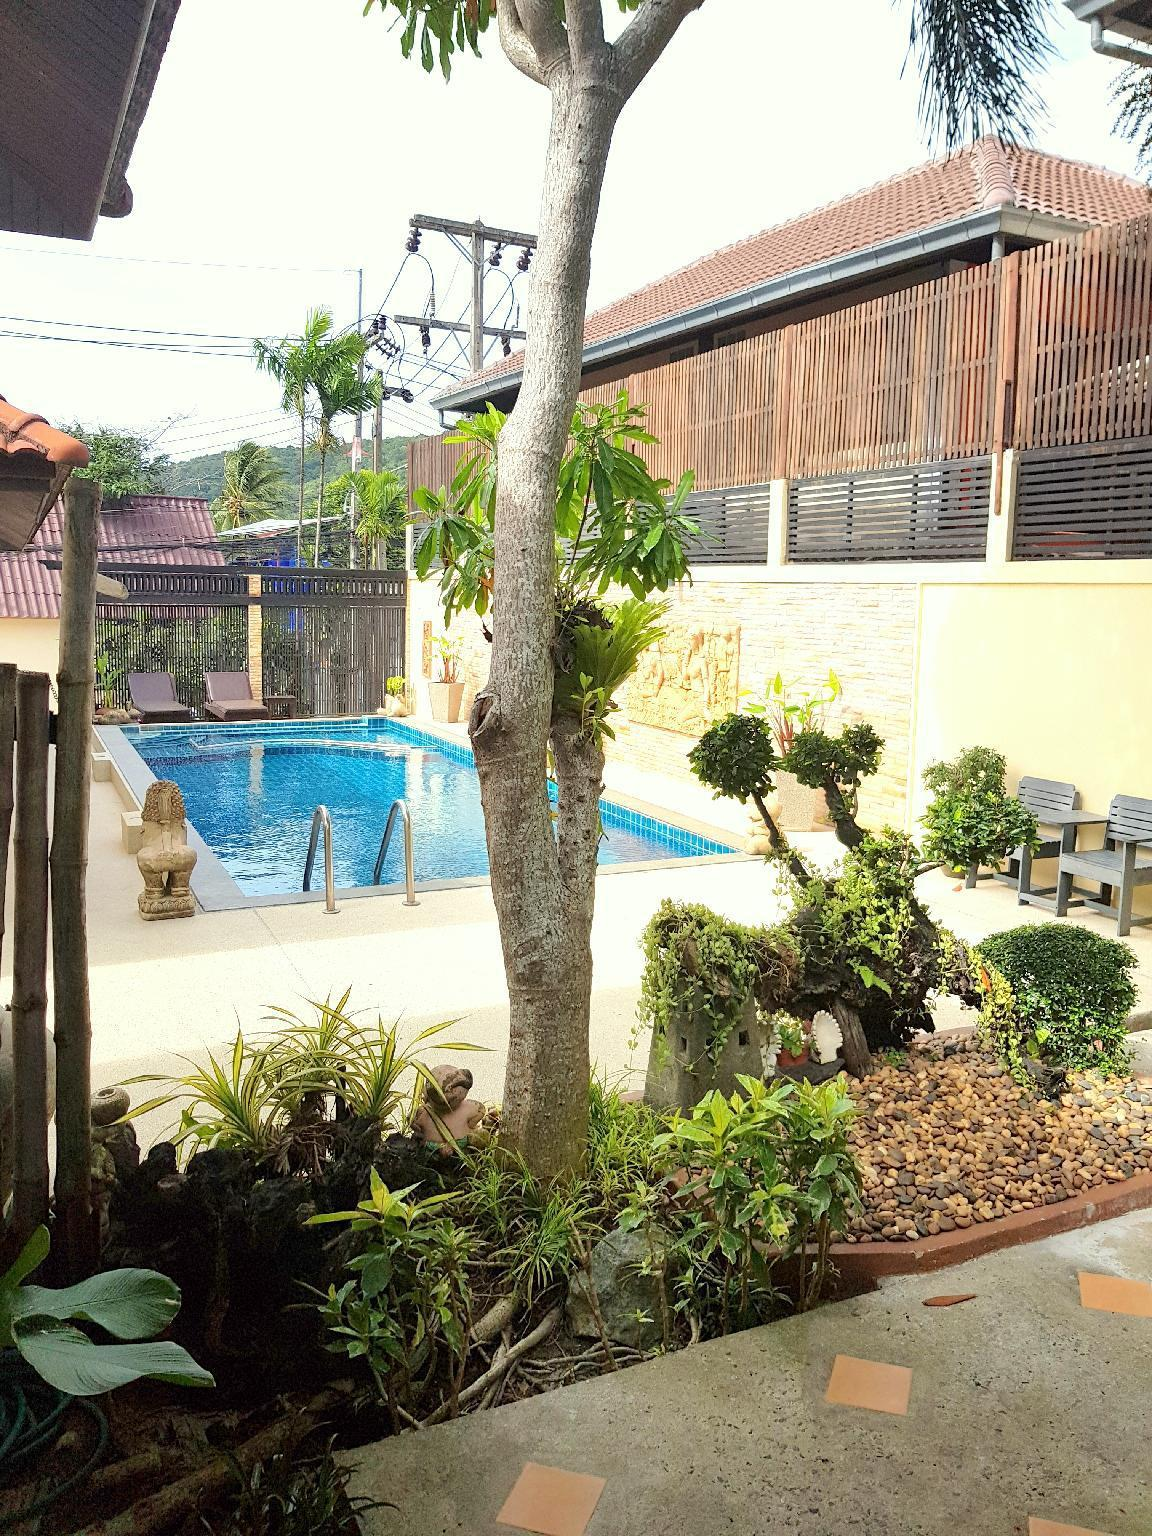 Bungalow in BOPHUT with swimming pool Bungalow in BOPHUT with swimming pool